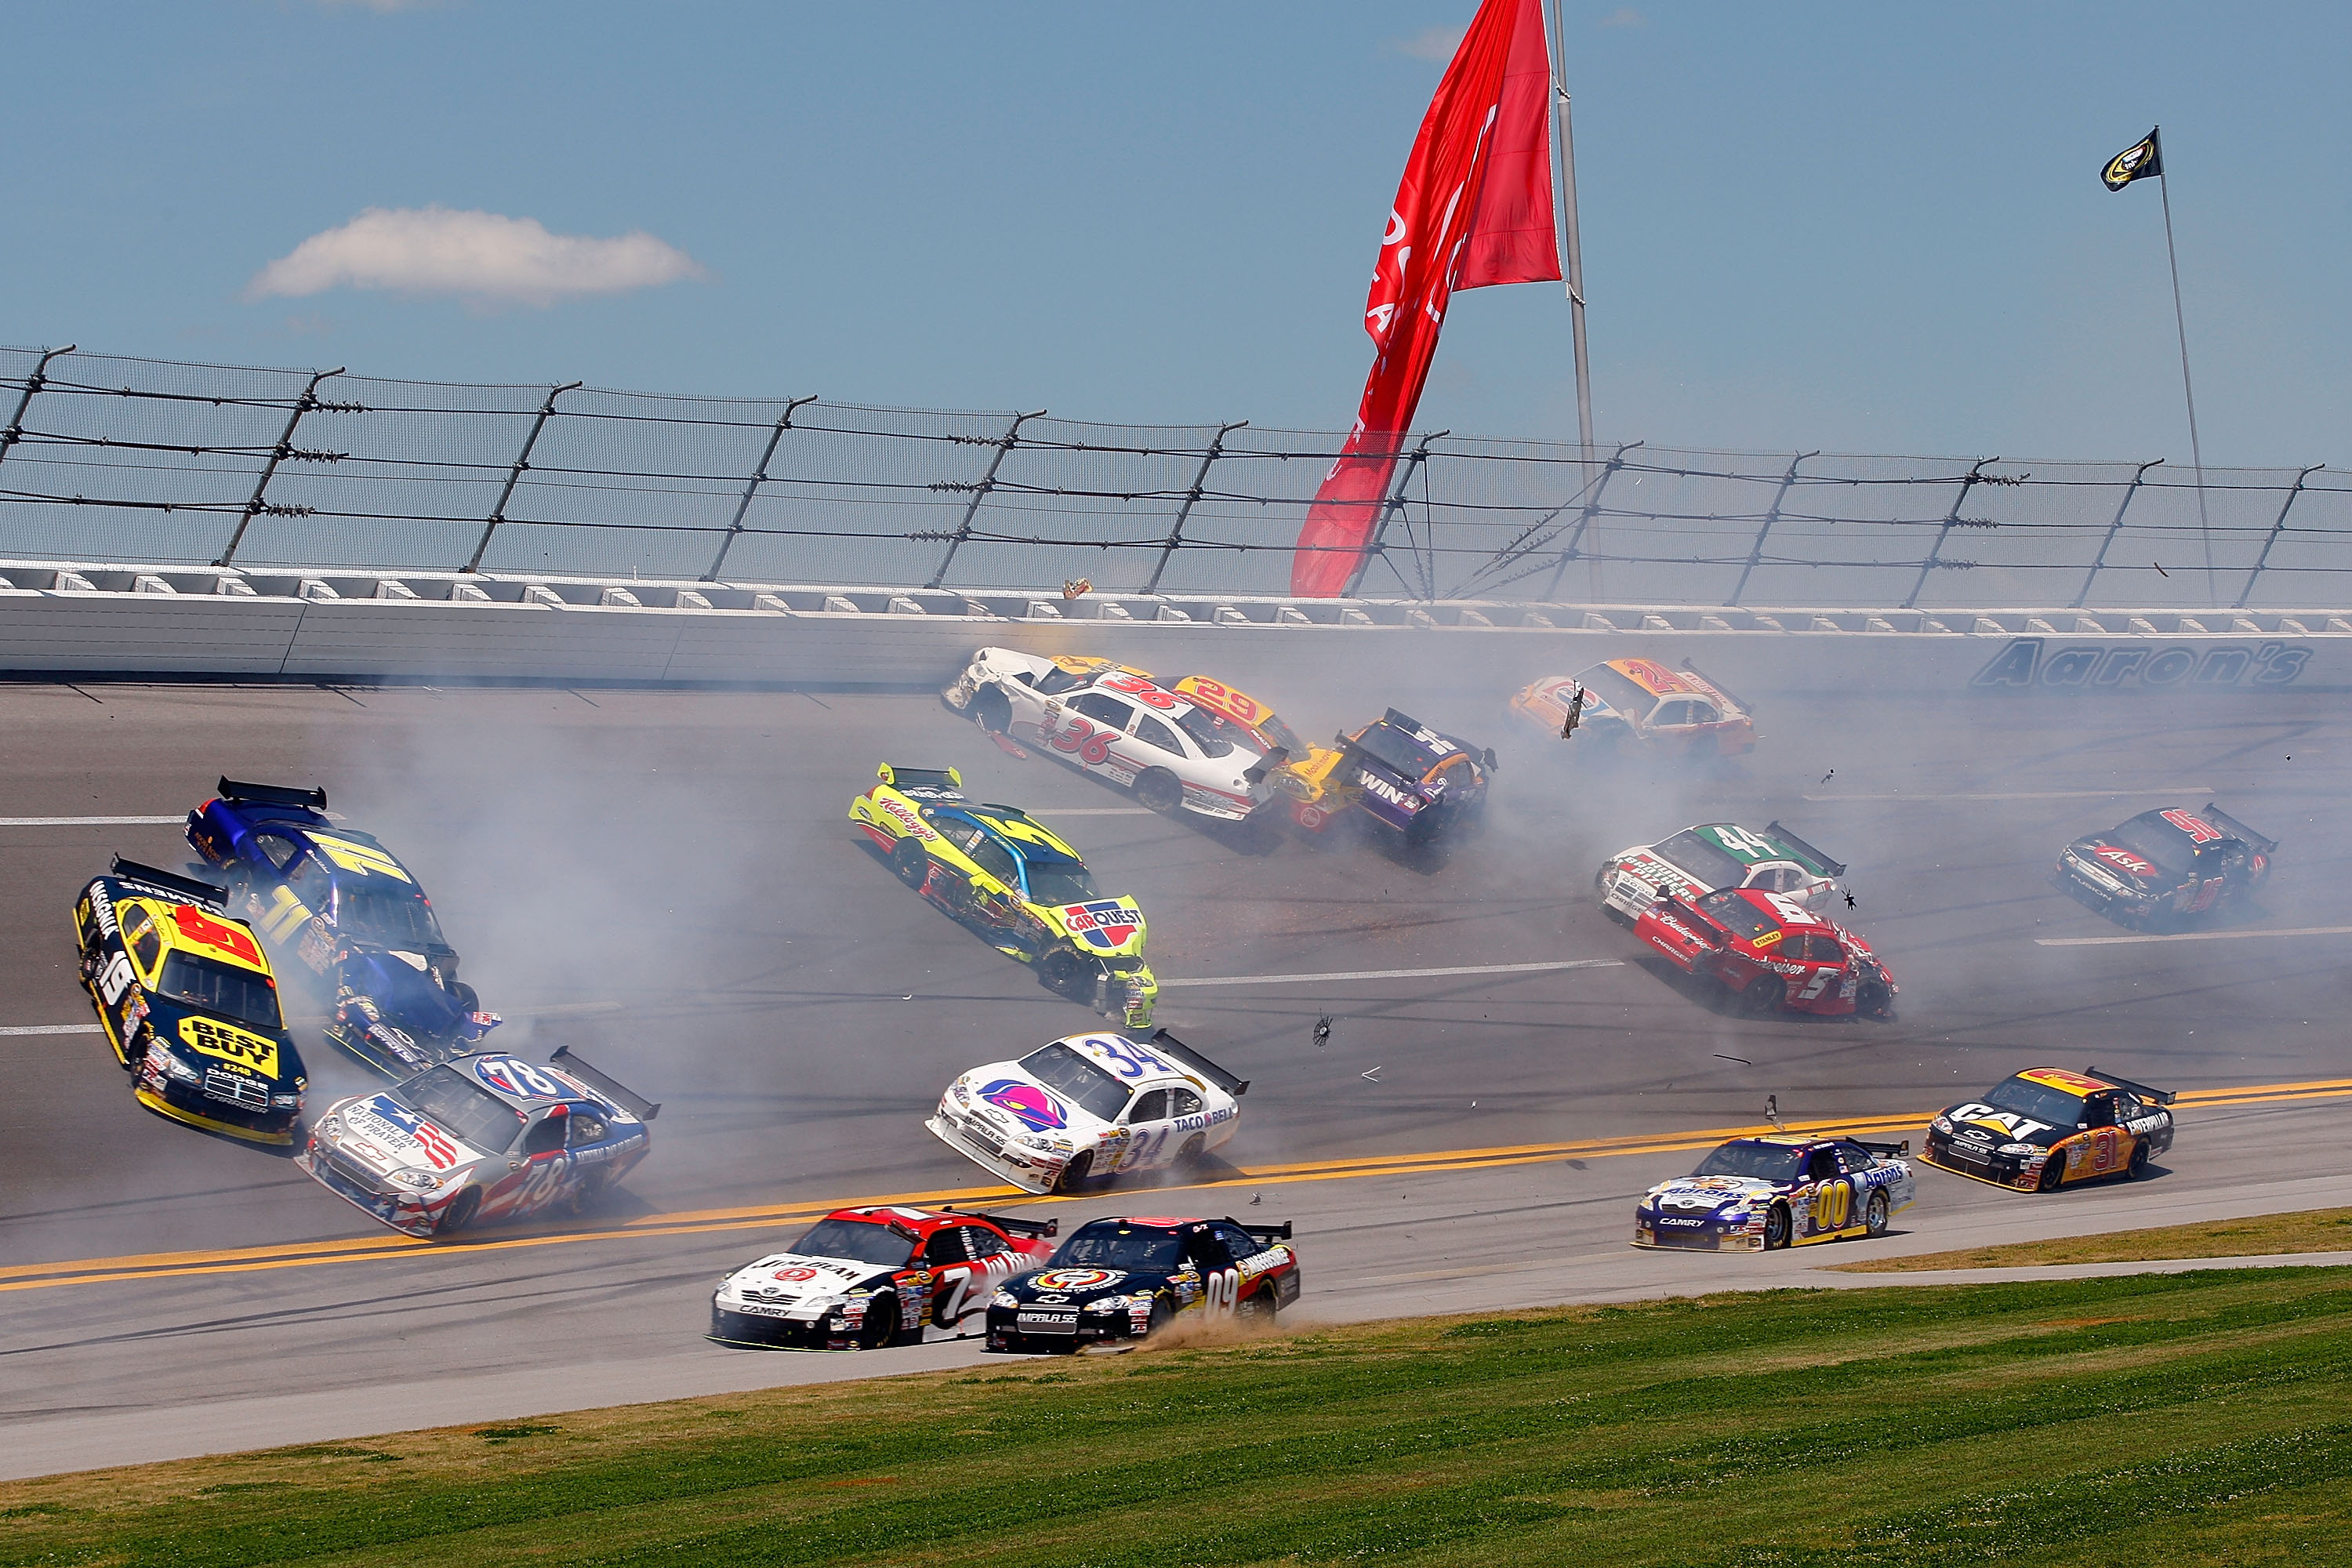 TALLADEGA, AL - APRIL 26:  A multi-car incident involving 16 cars in turn four during the NASCAR Sprint Cup Series Aaron's 499 at Talladega Superspeedway on April 26, 2009 in Talladega, Alabama.  (Photo by John Harrelson/Getty Images)